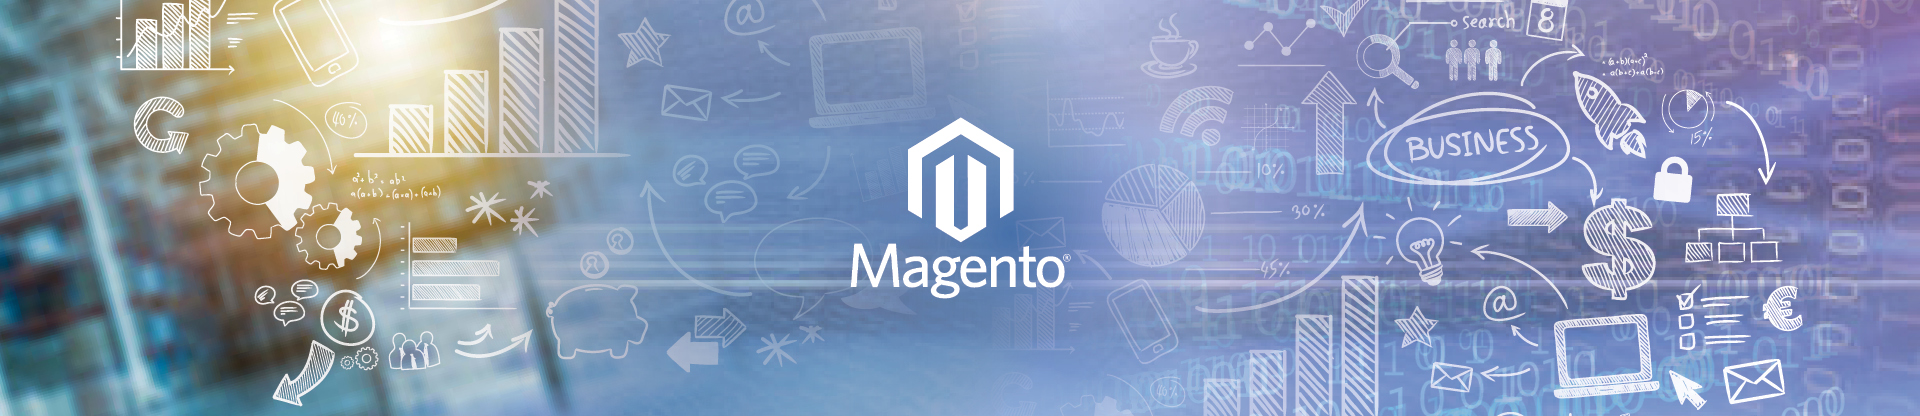 magento-jd-edwards-e1-integration-solutions